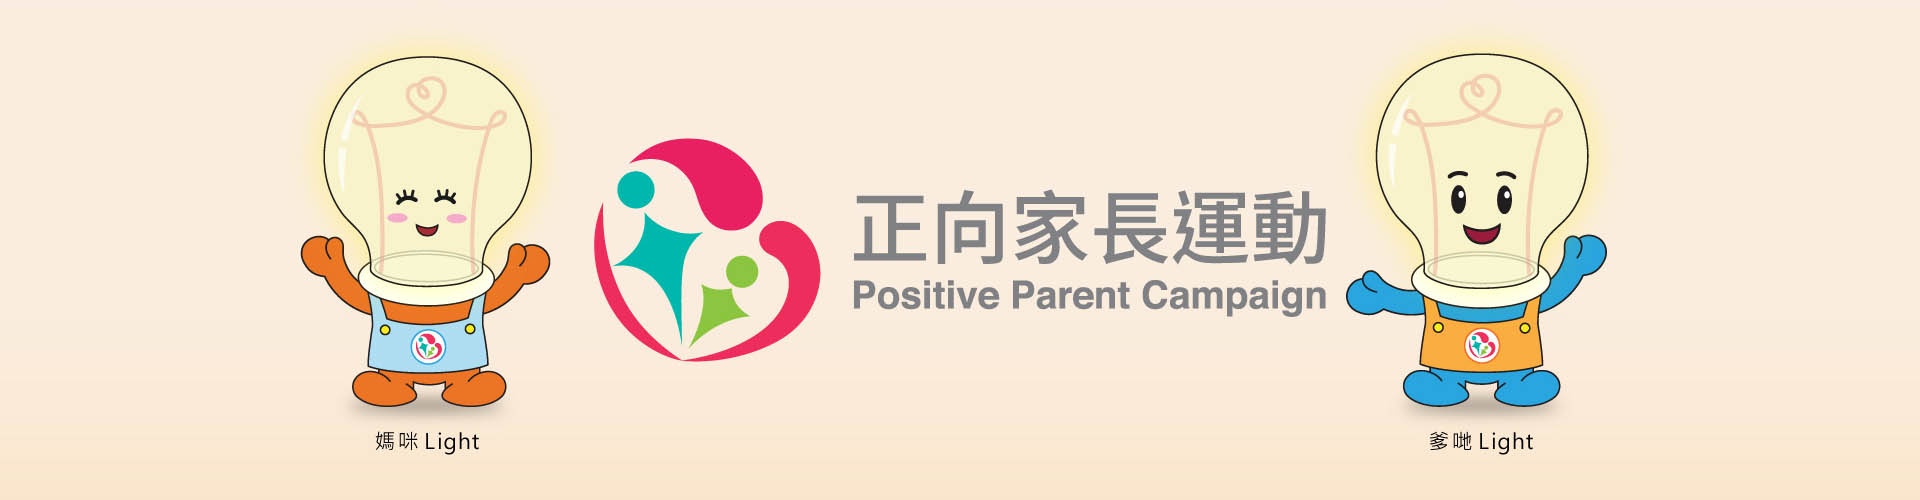 Positive Parent Campaign